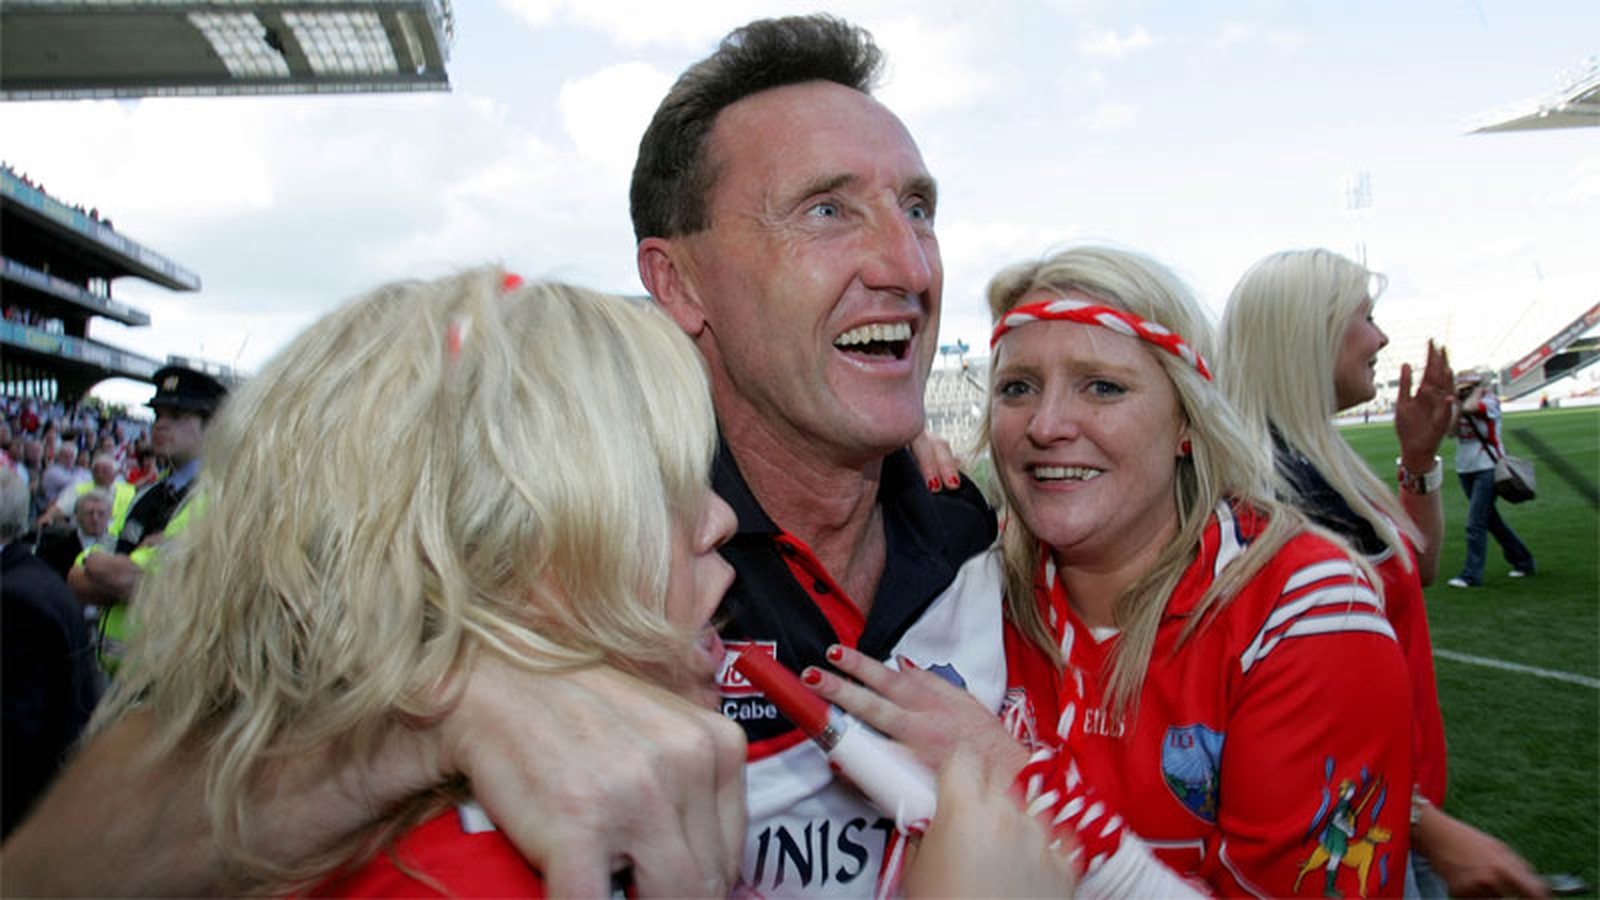 Image - Louth manager Peter FItzpatrick celebrates